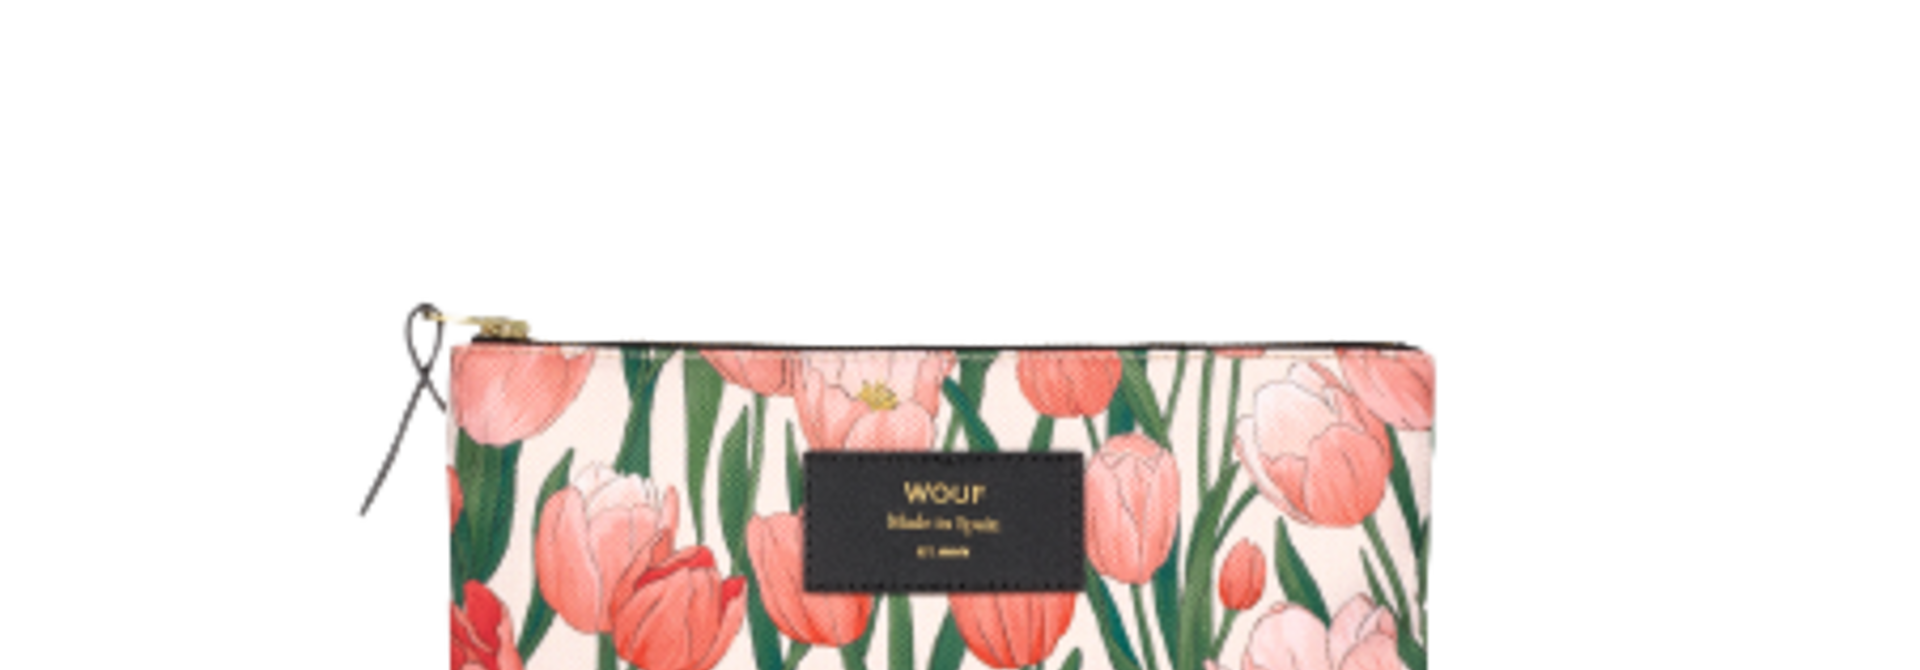 WOUF - Large Amsterdam Pouch